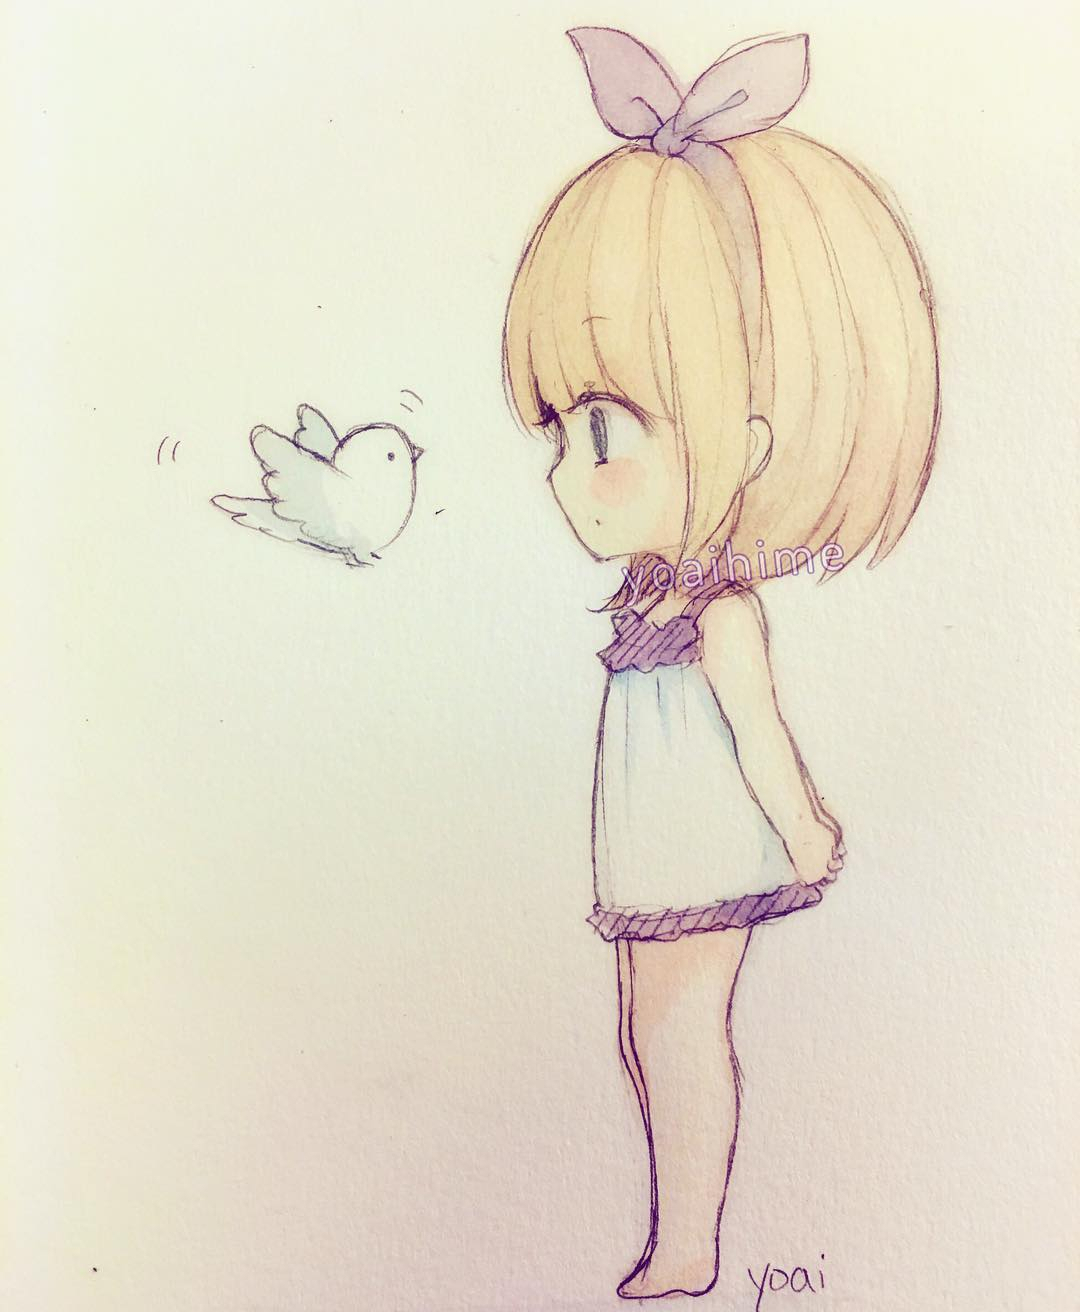 Easy cute anime drawings chibi drawing in pencil anime for easy